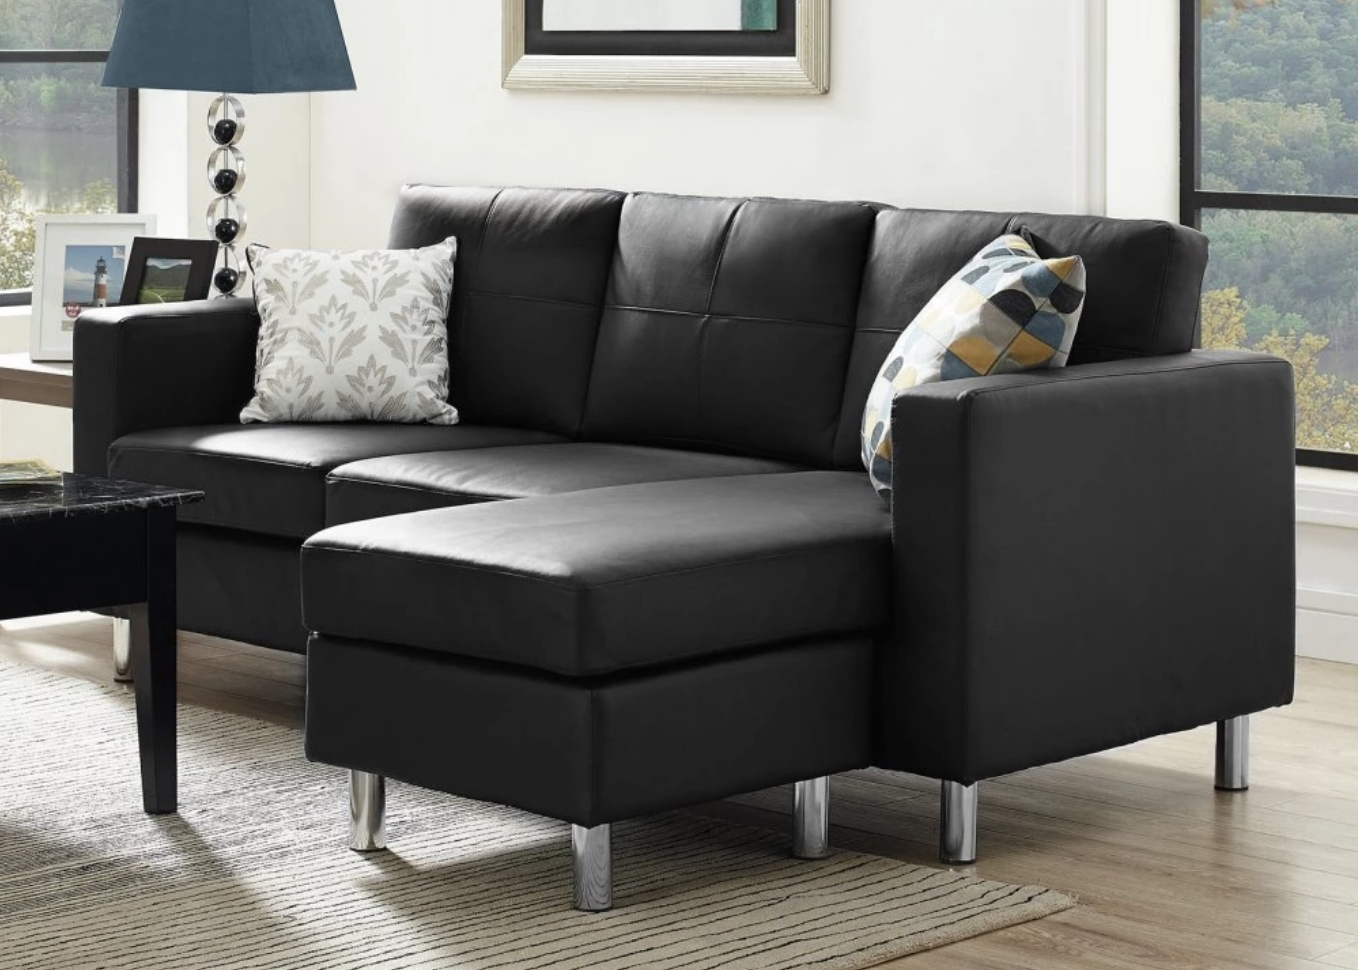 80X80 Sectional Sofas Intended For Well Known 75 Modern Sectional Sofas For Small Spaces (2018) (Gallery 13 of 20)